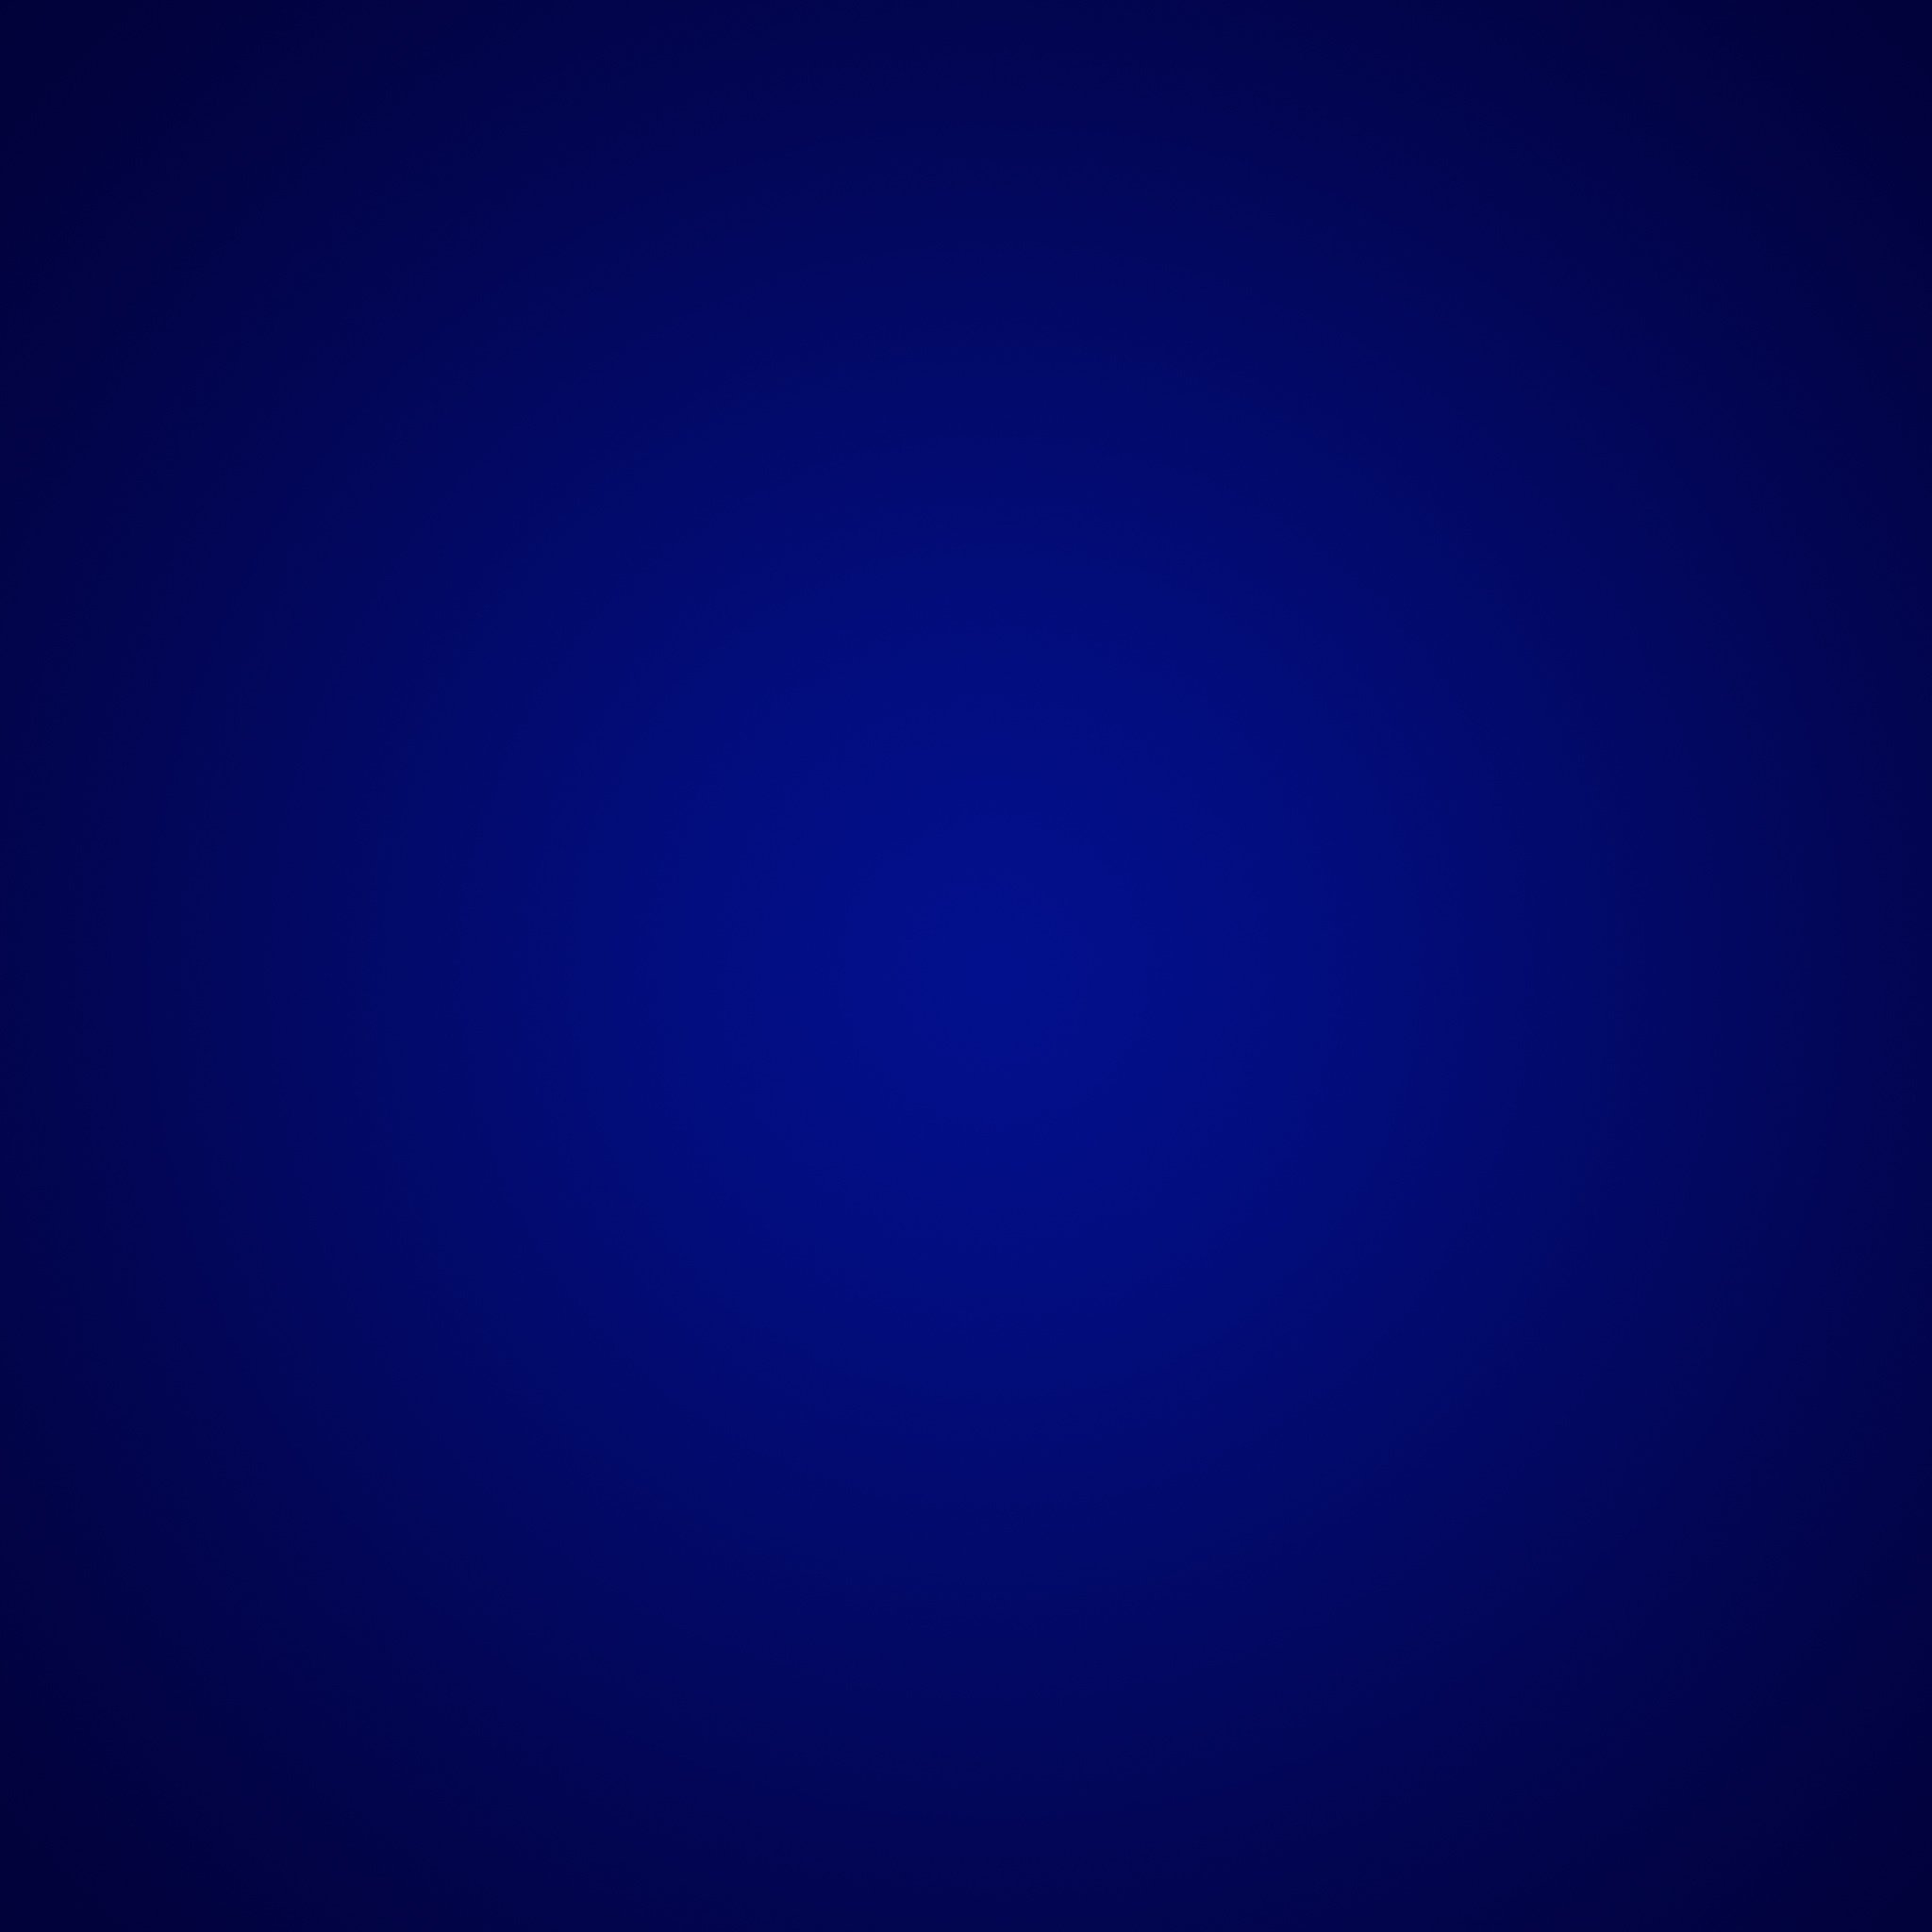 Dark Blue Hd Wallpapers PIC MCH056367